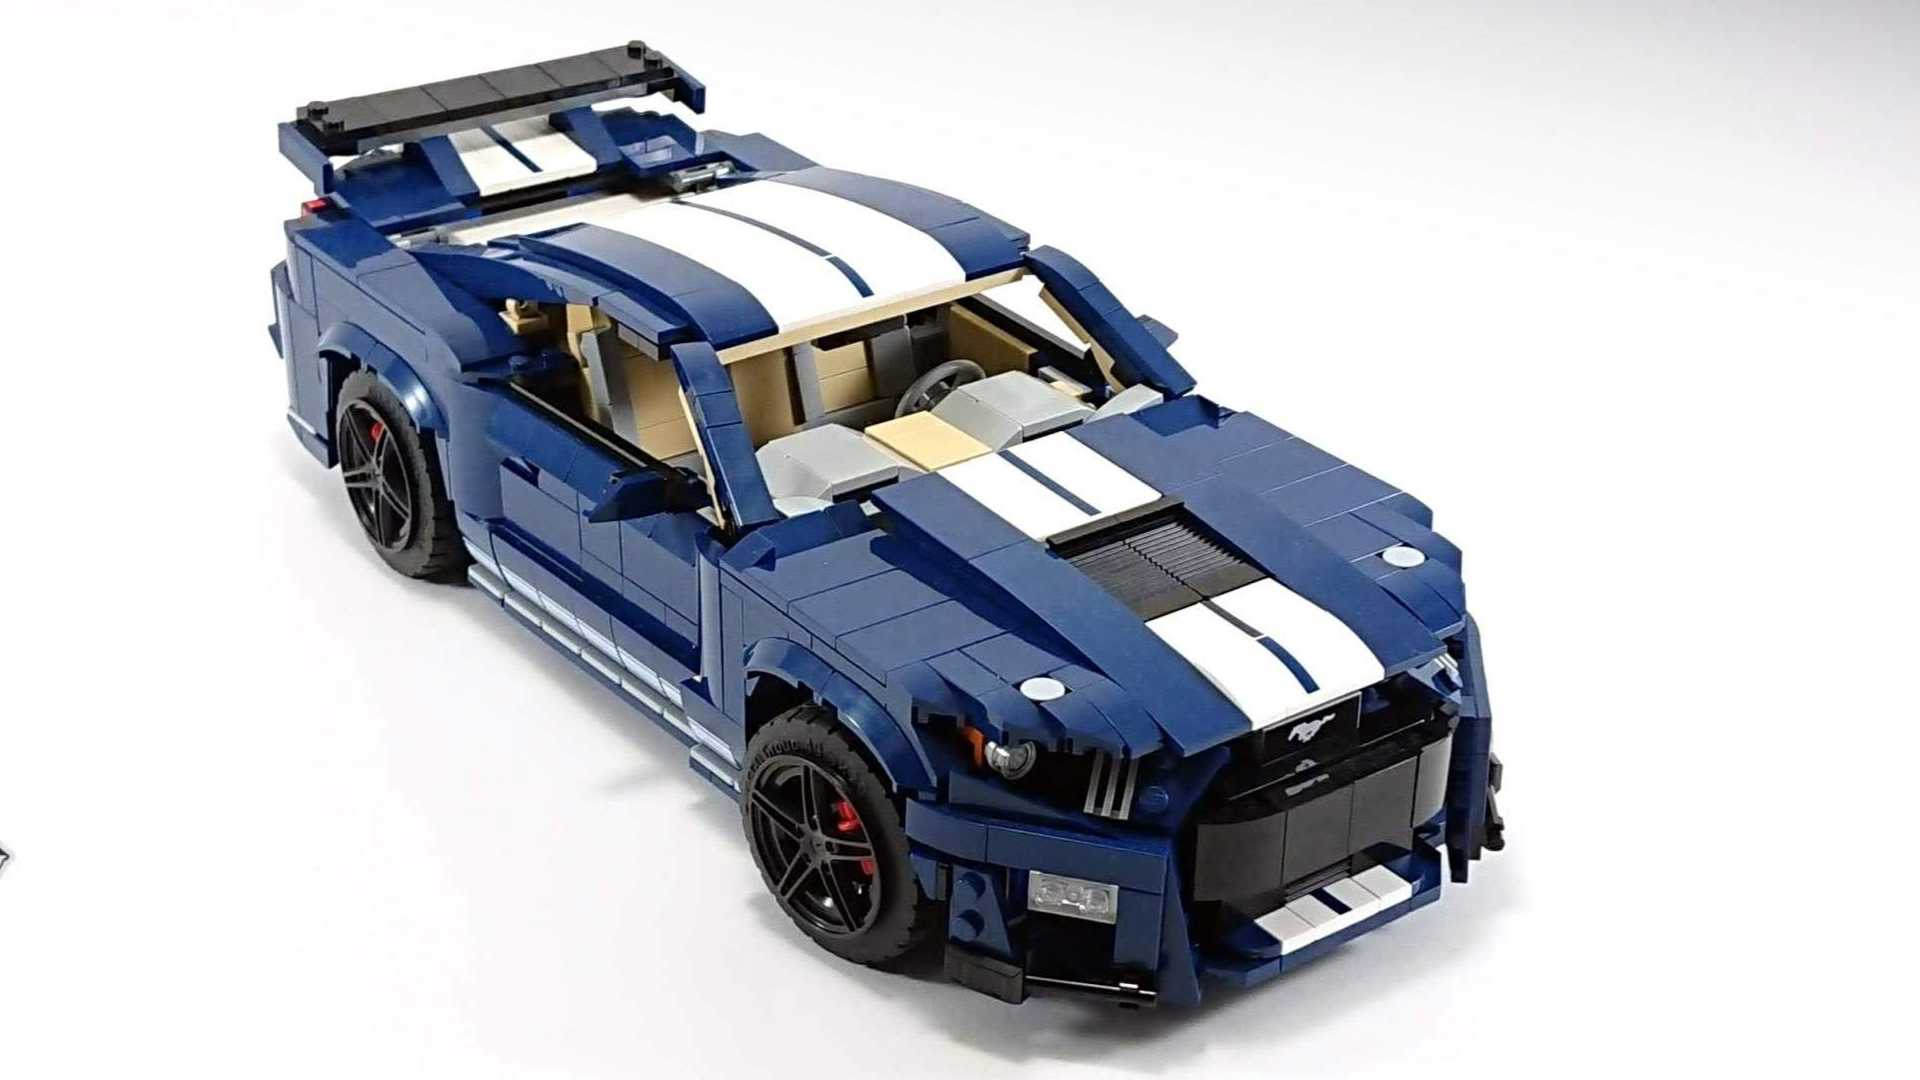 Guy Builds Awesome Lego 2020 Shelby GT500 From Official '67 Mustang Set